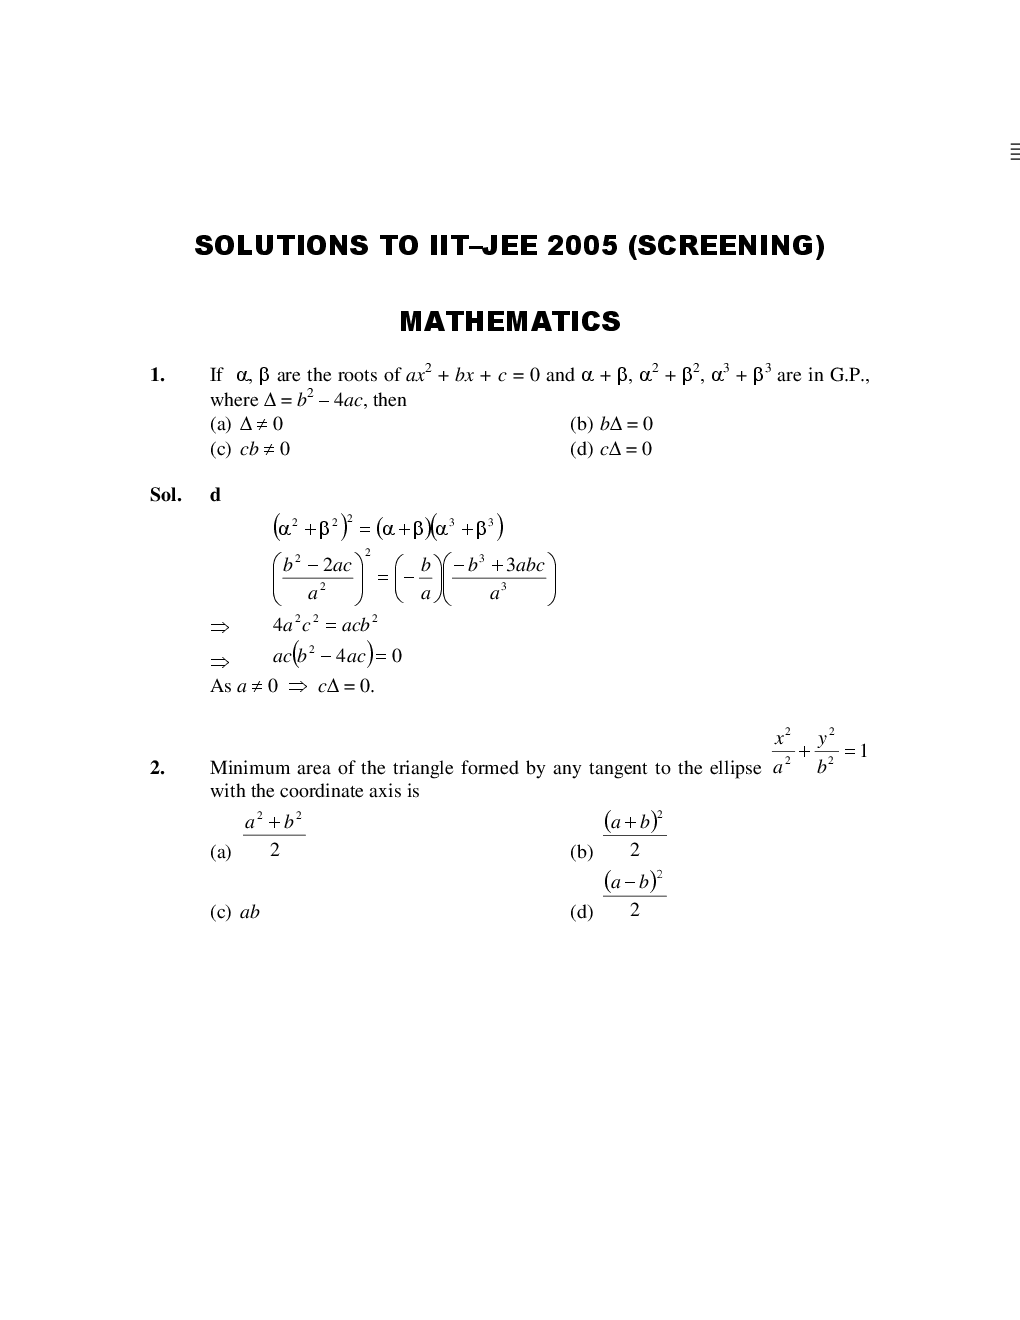 IIT-JEE Screening Solved Question Papers (Physics,Chemistry,Maths) 2004-2005 - Page 2